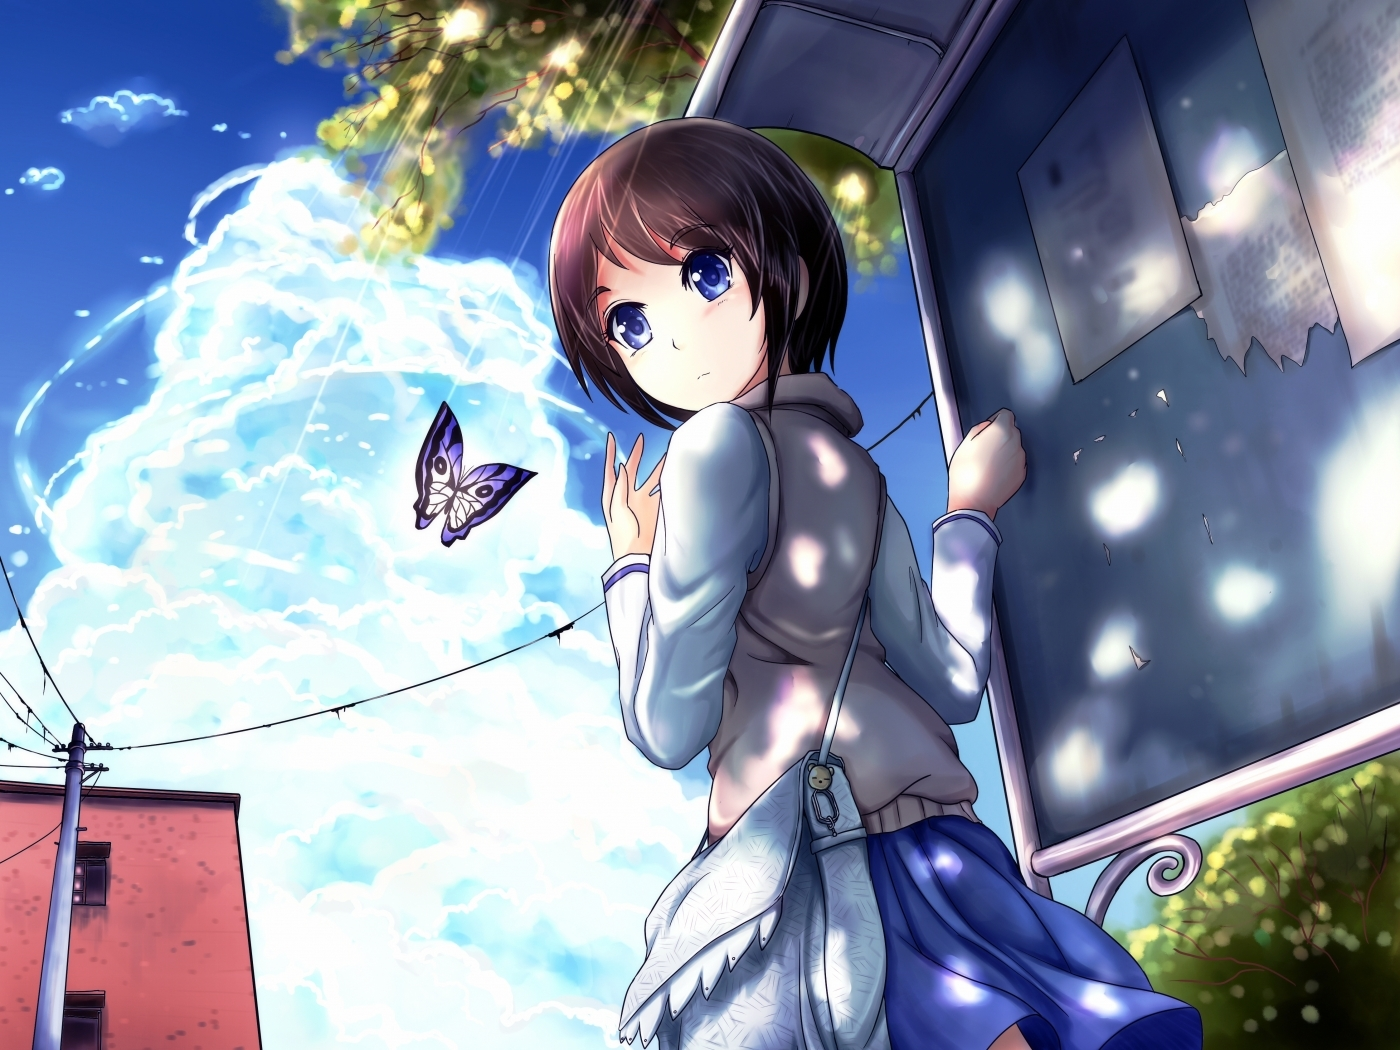 39970 download wallpaper Anime, Girls screensavers and pictures for free